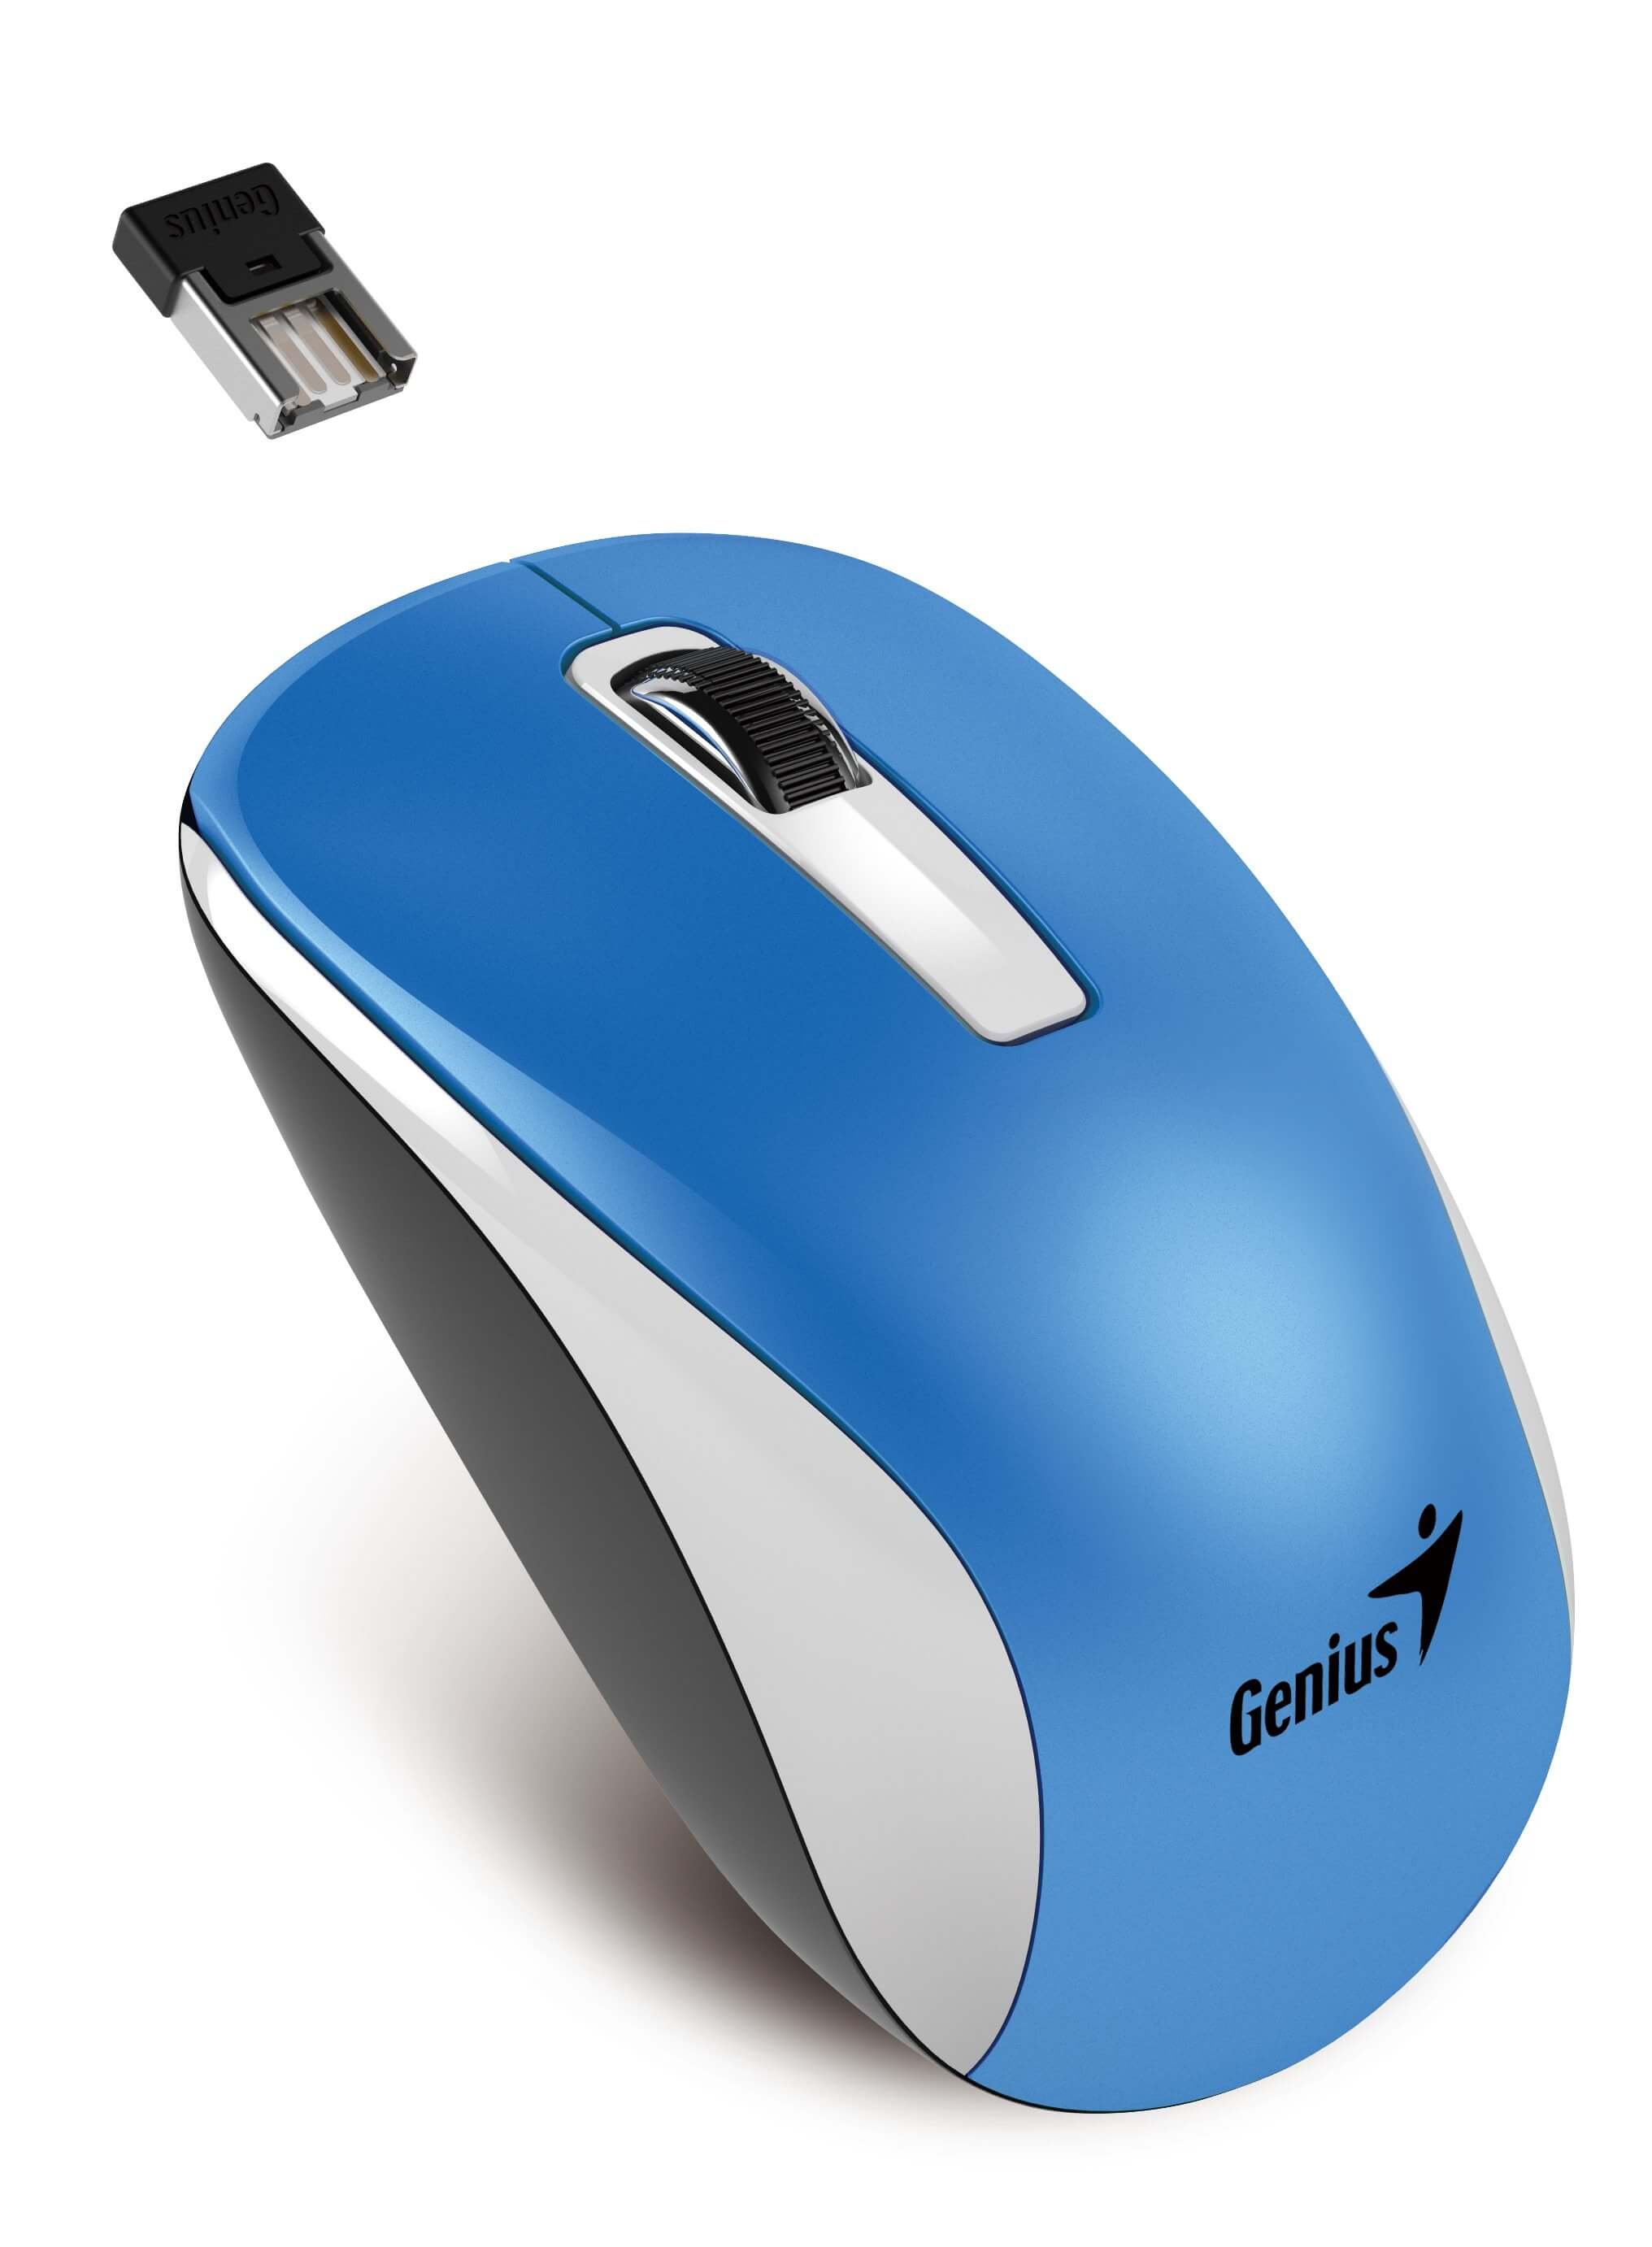 Genius NX-7010 Wireless Mouse